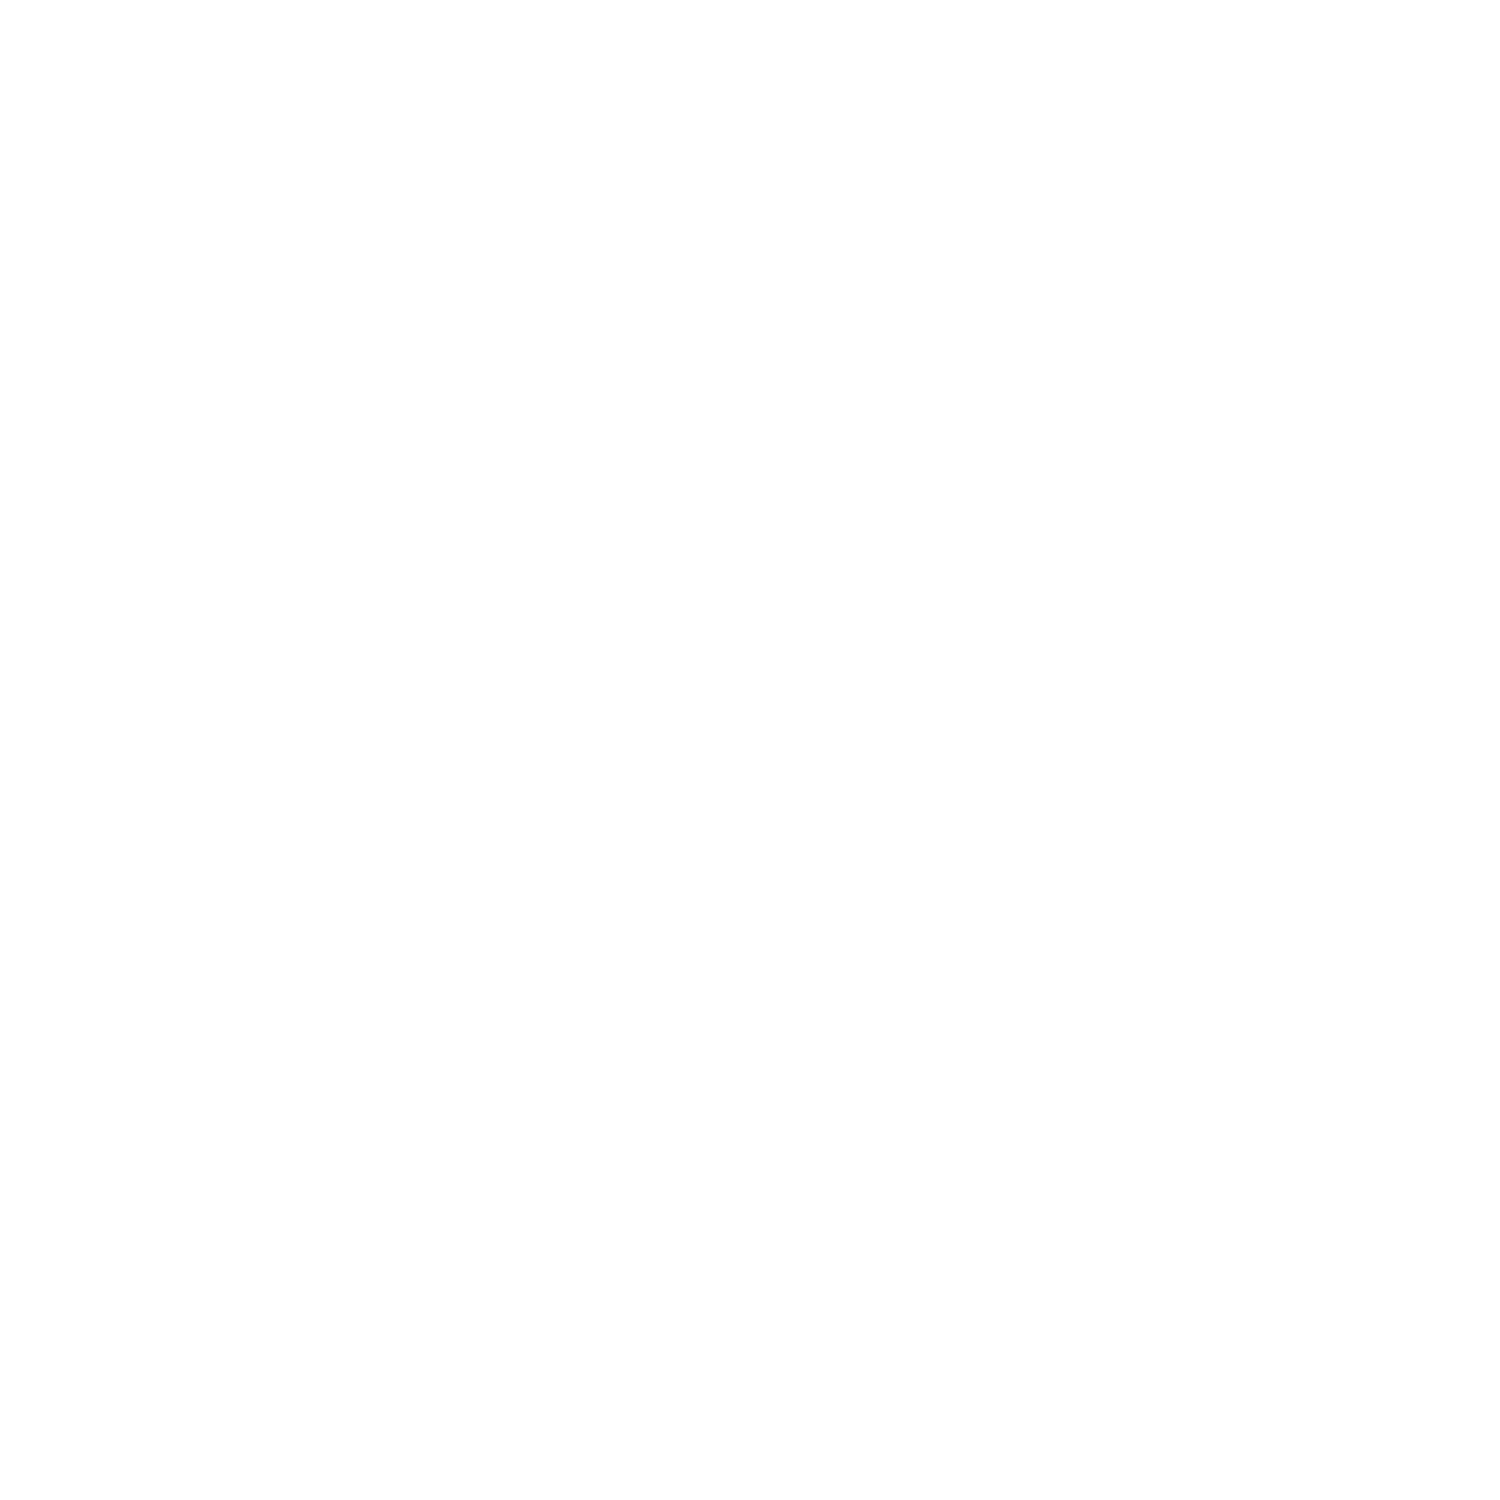 Light in a Body